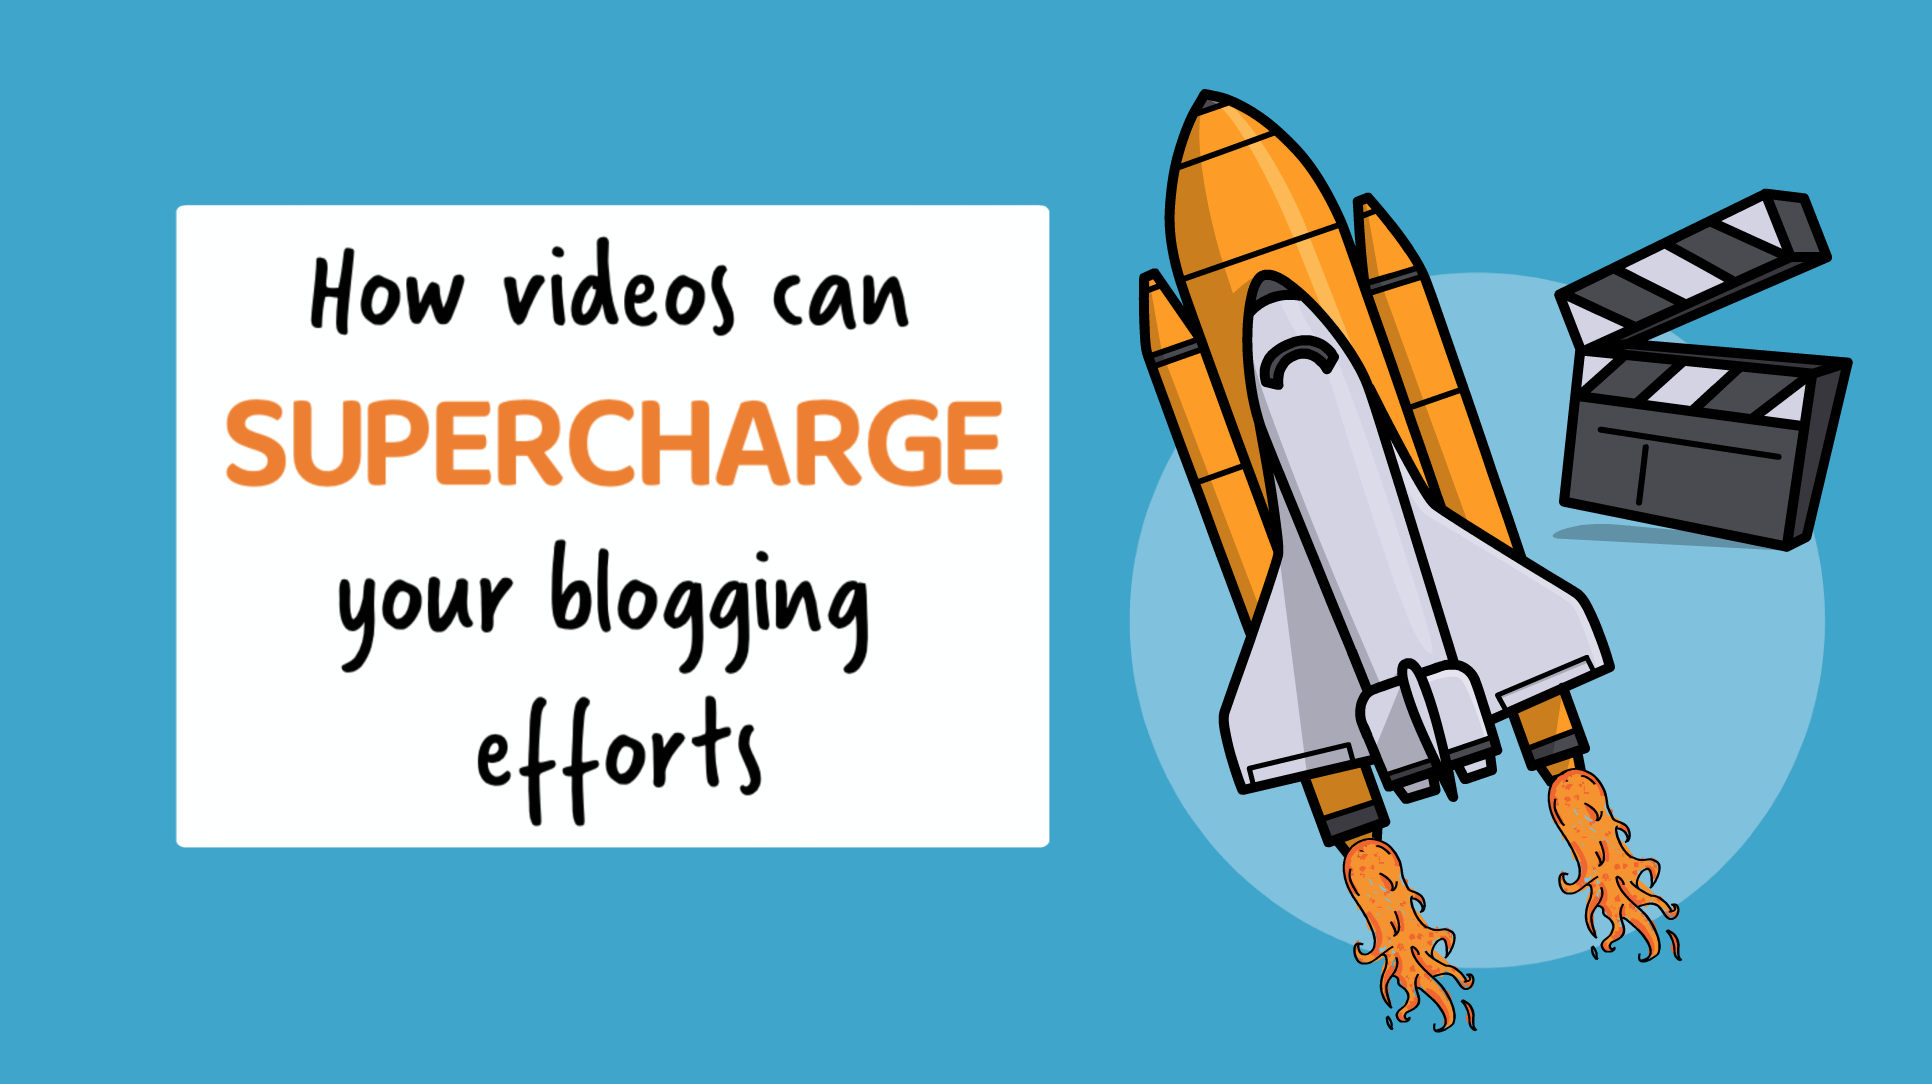 How videos can supercharge your blogging efforts